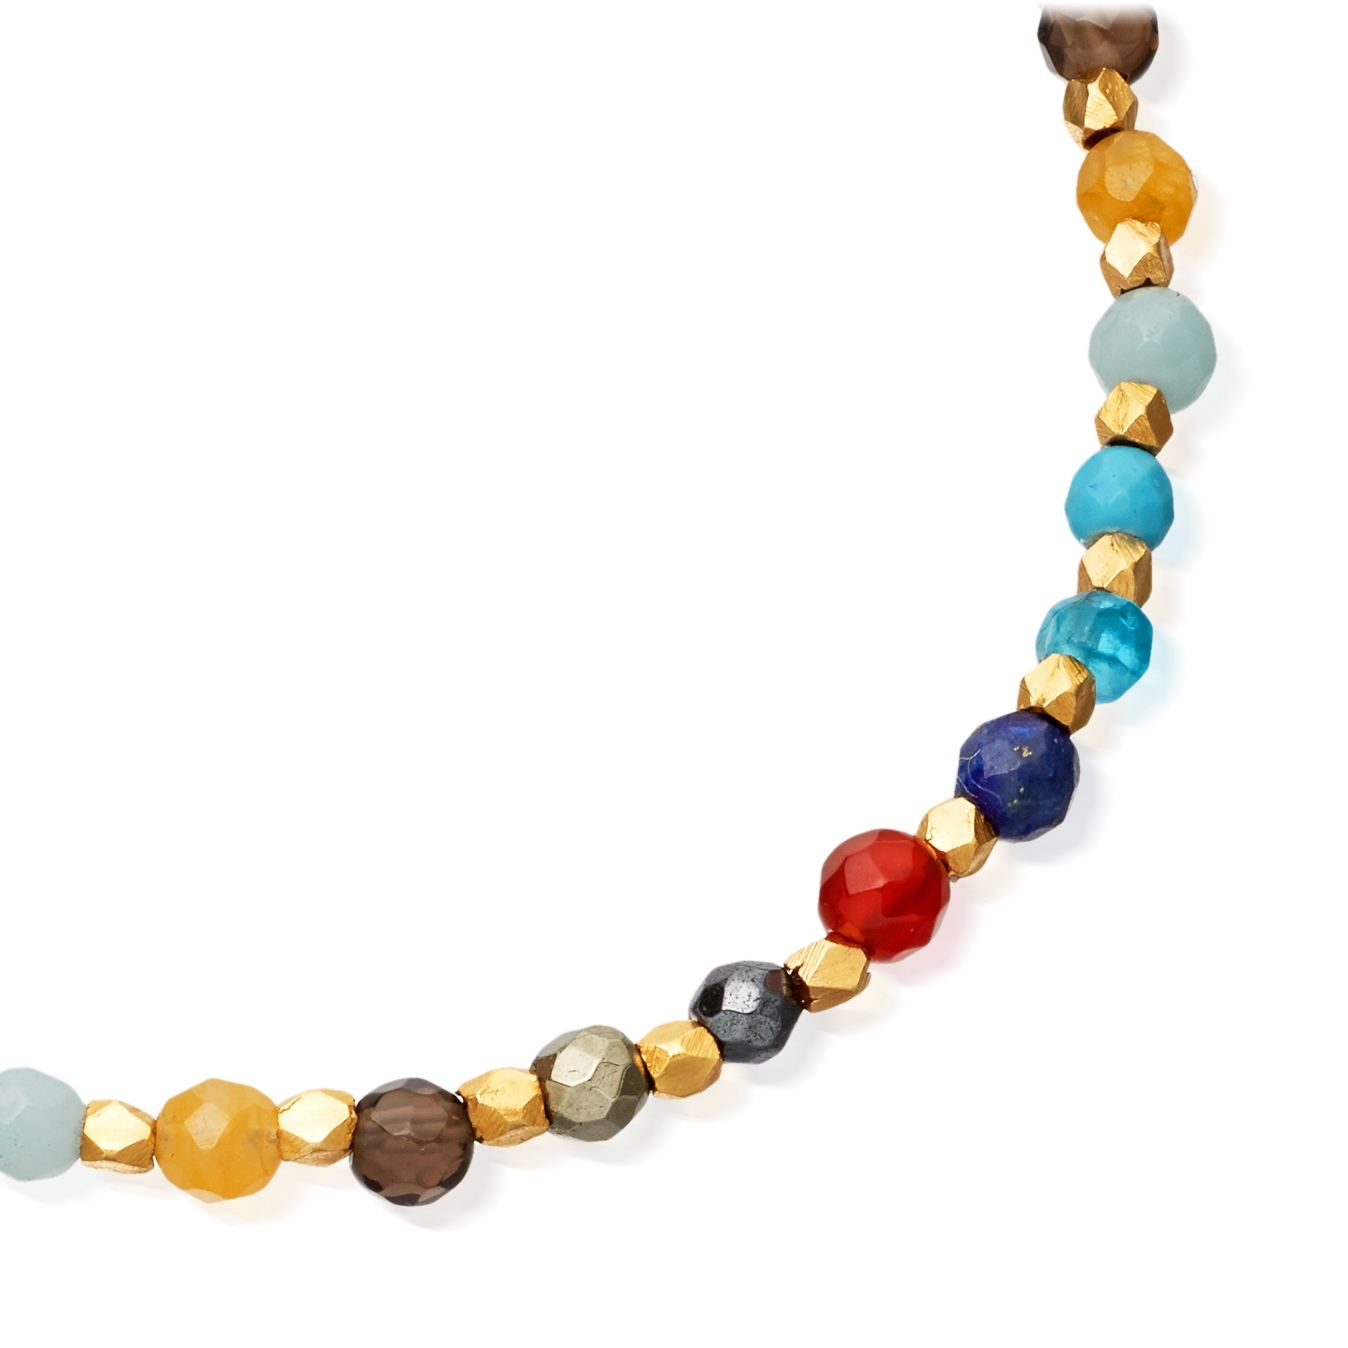 Rainbow Skinny Biography Bracelet